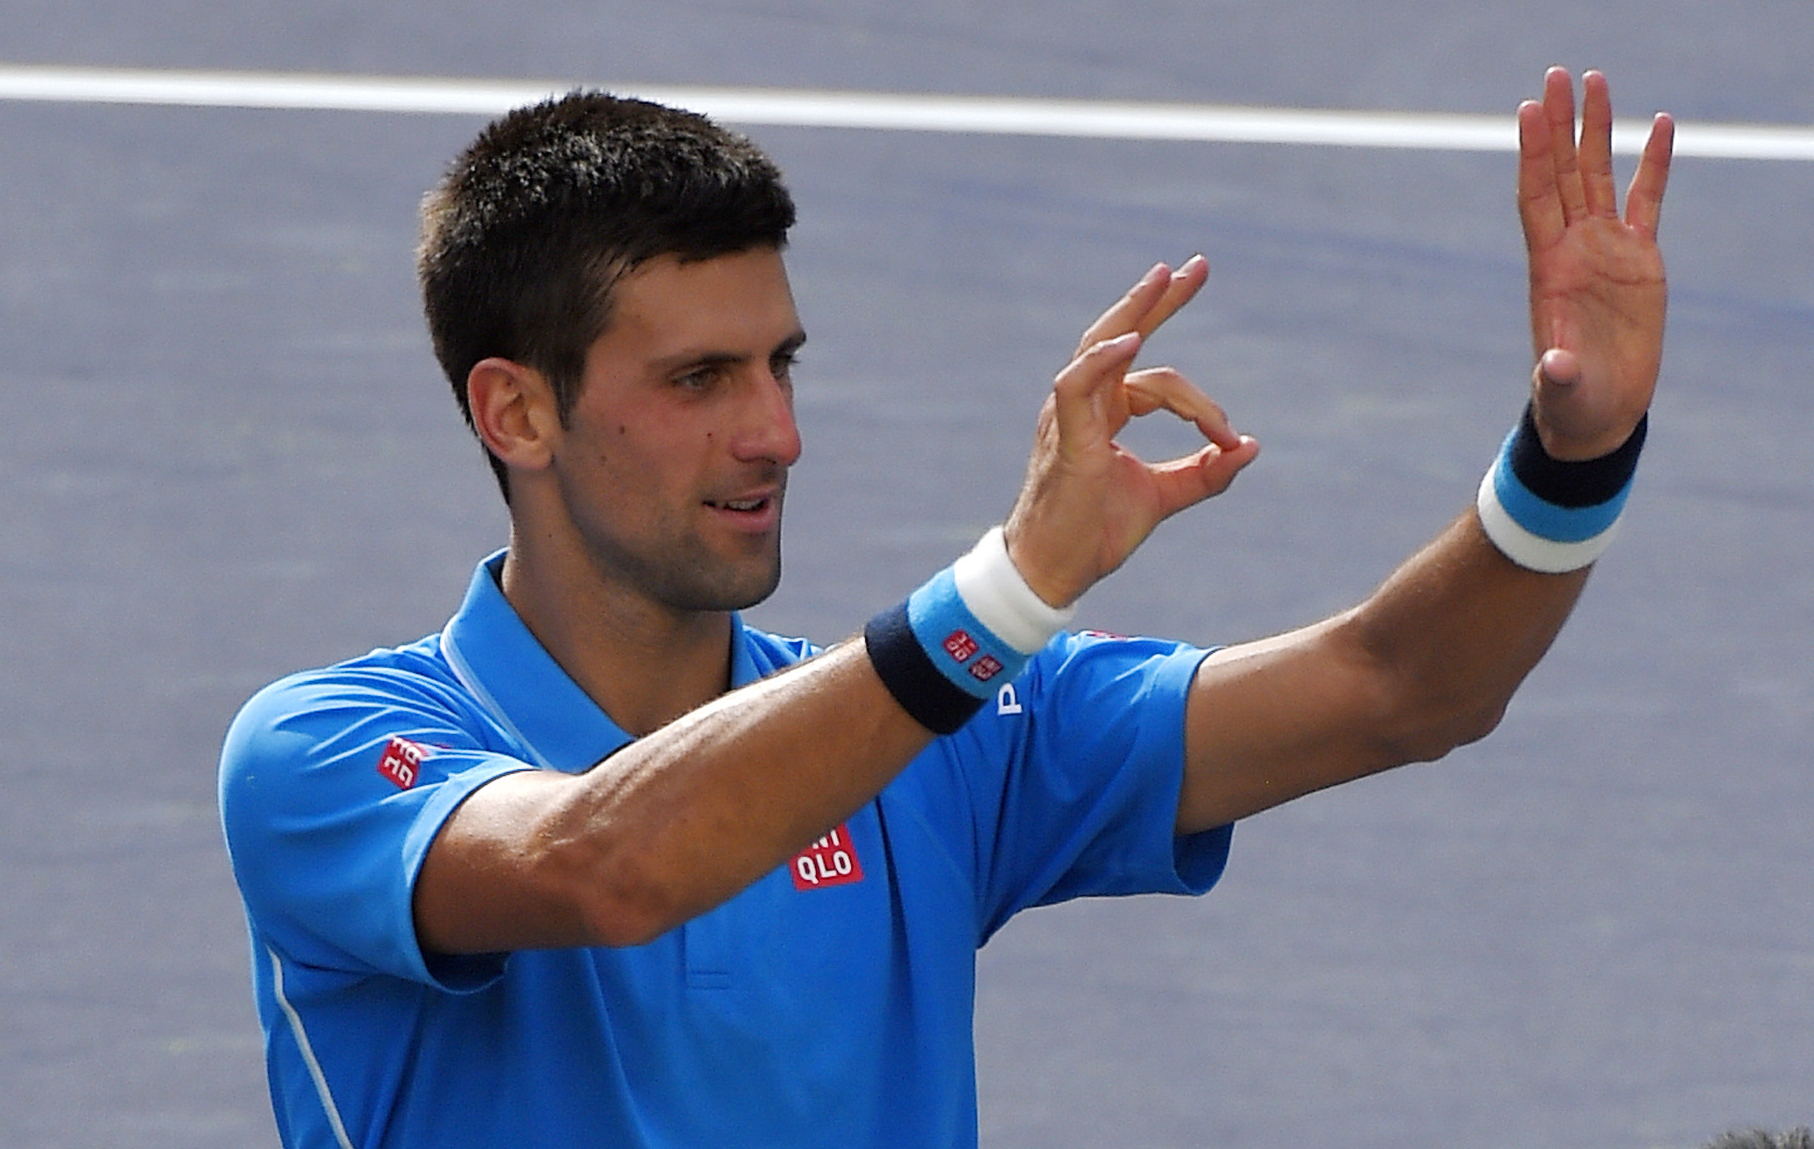 Tennis - ATP - Djokovic : �Je suis au pic de ma carri�re�